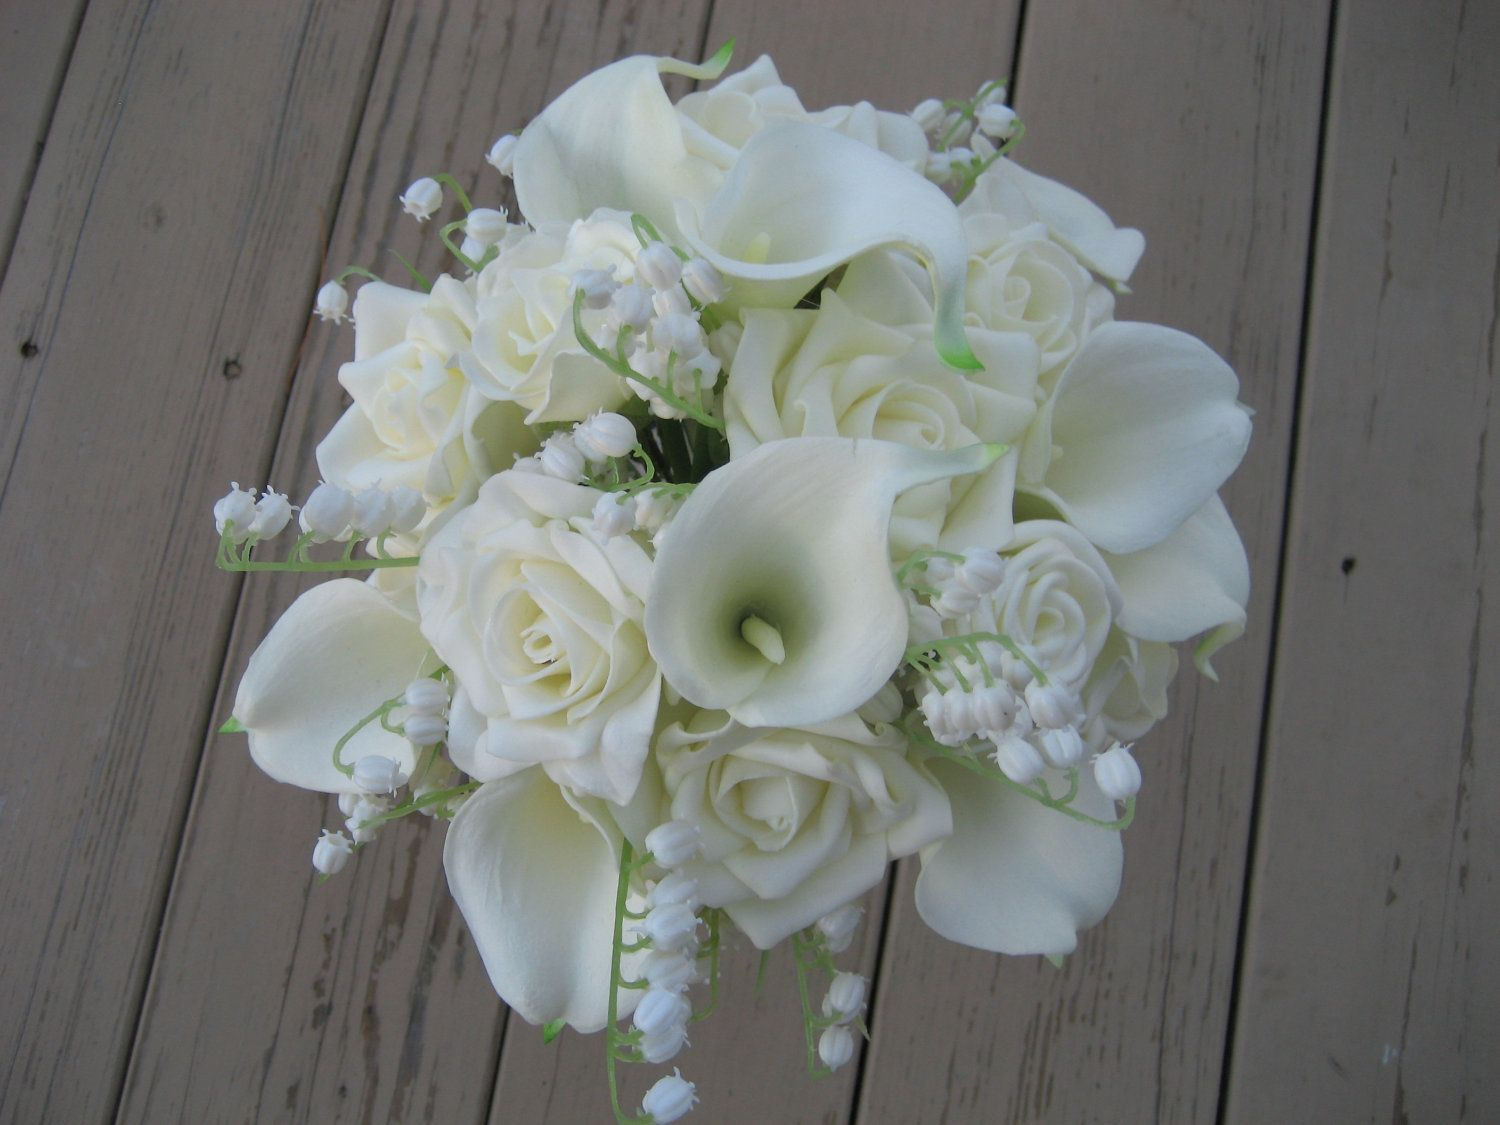 All white calla liliy bouquets bouquet all white flowers wedding flower bouquets lily on wedding bouquet all white flowers roses lily of the valley and calla dhlflorist Choice Image